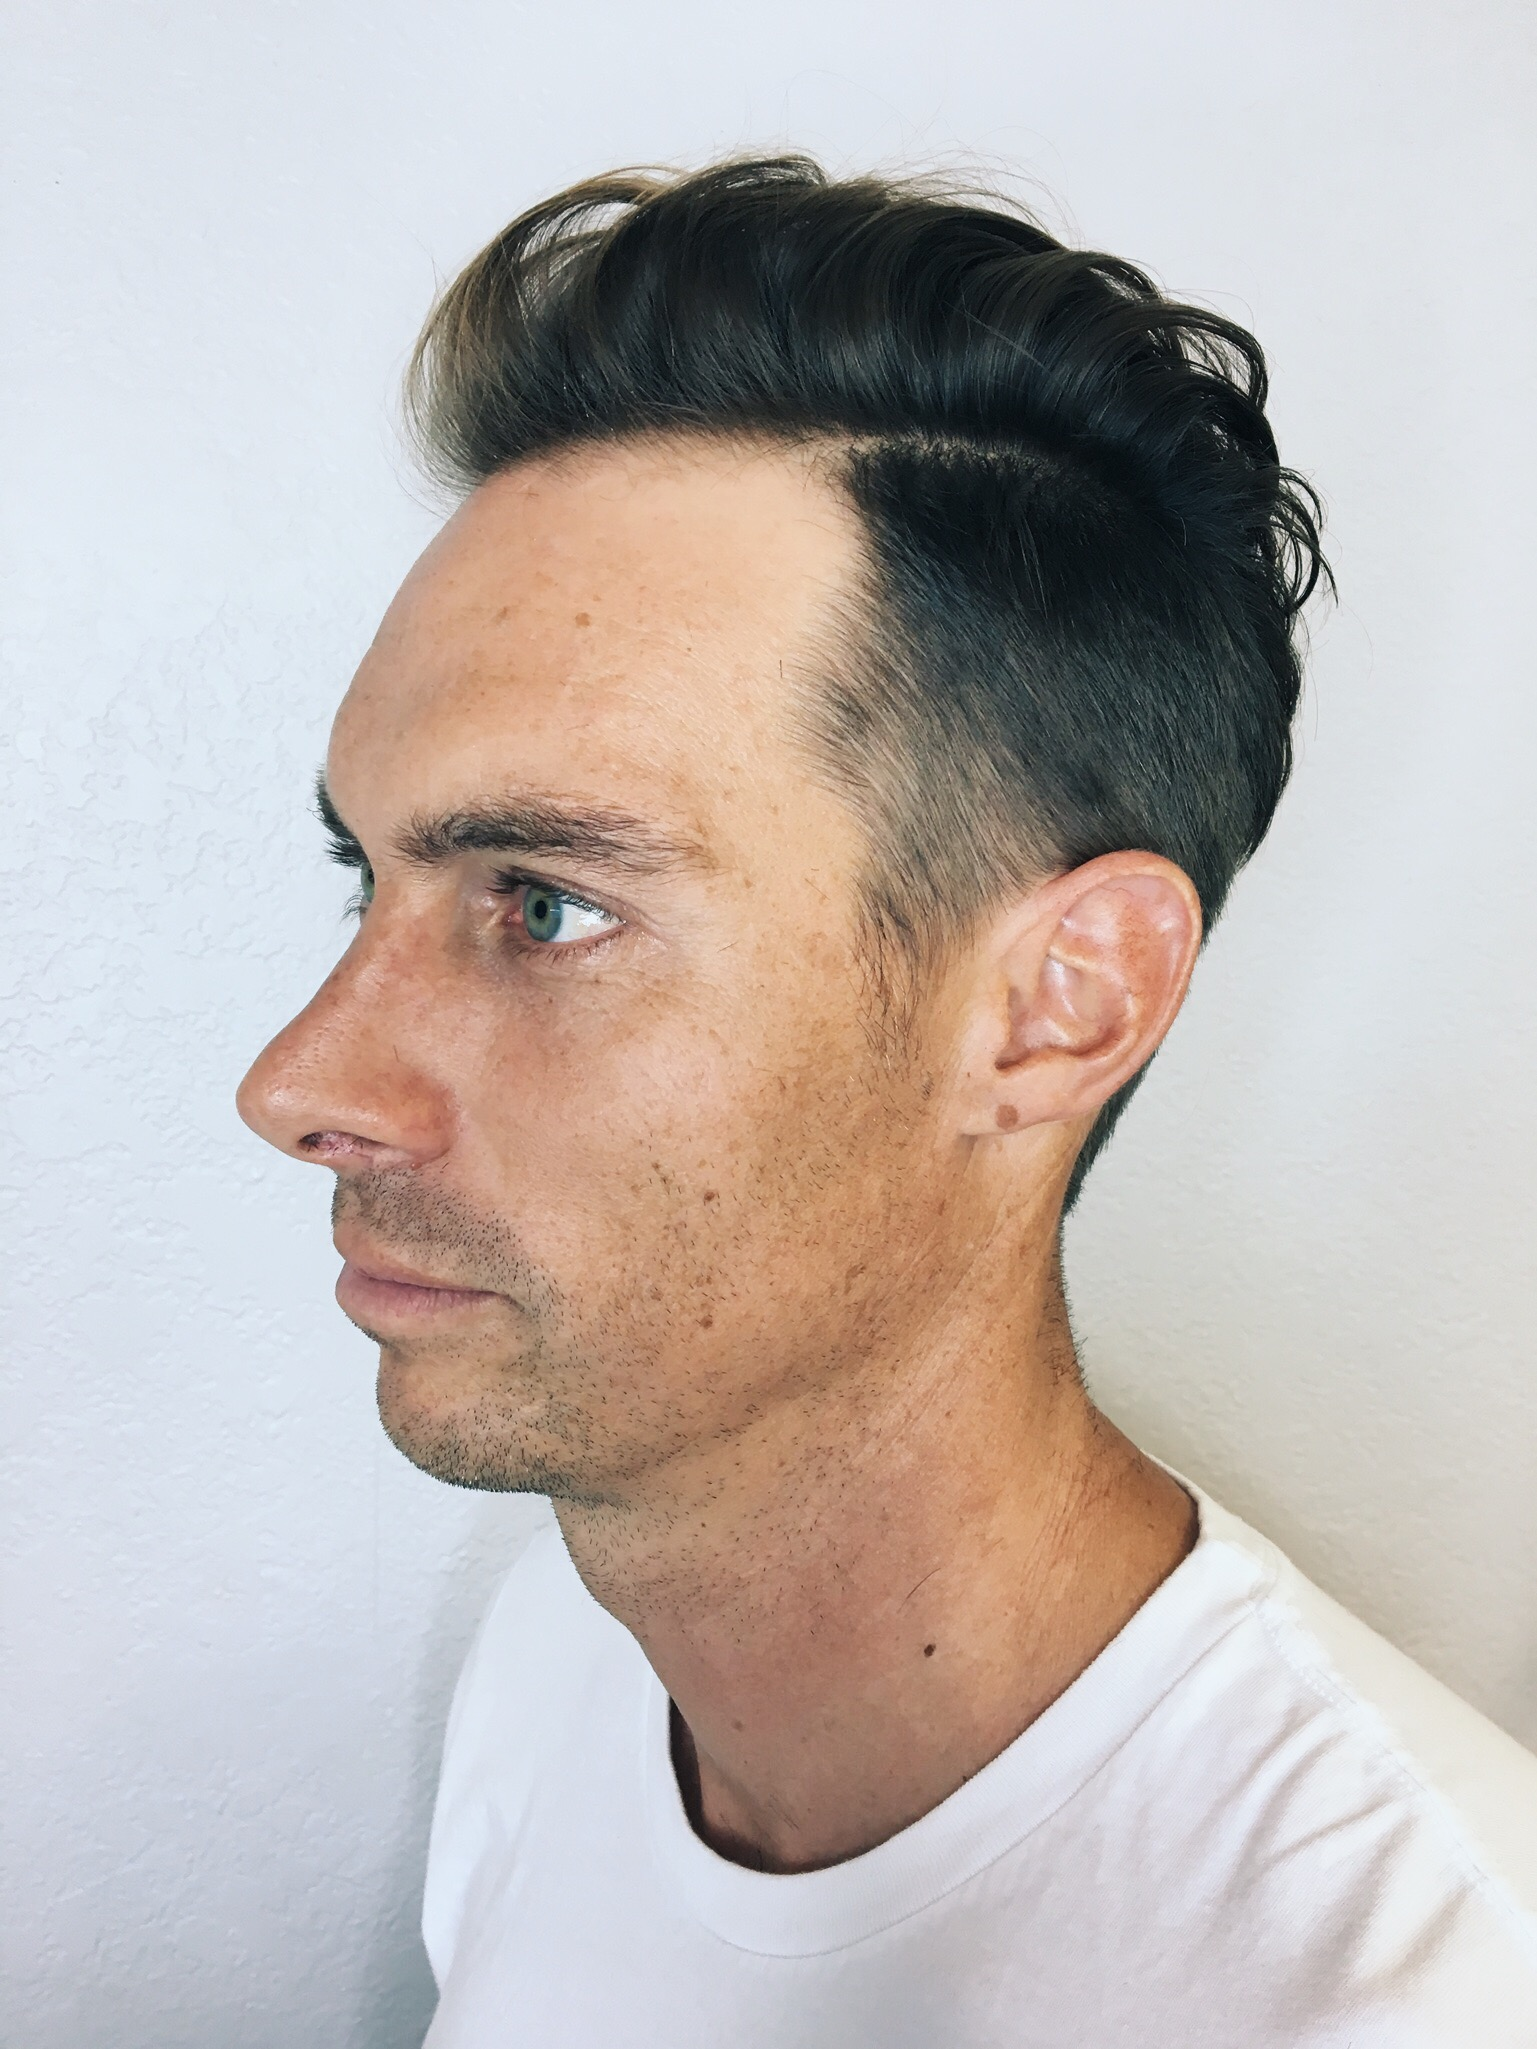 Fresh pompadour with a bit of curl for that salty surf look.